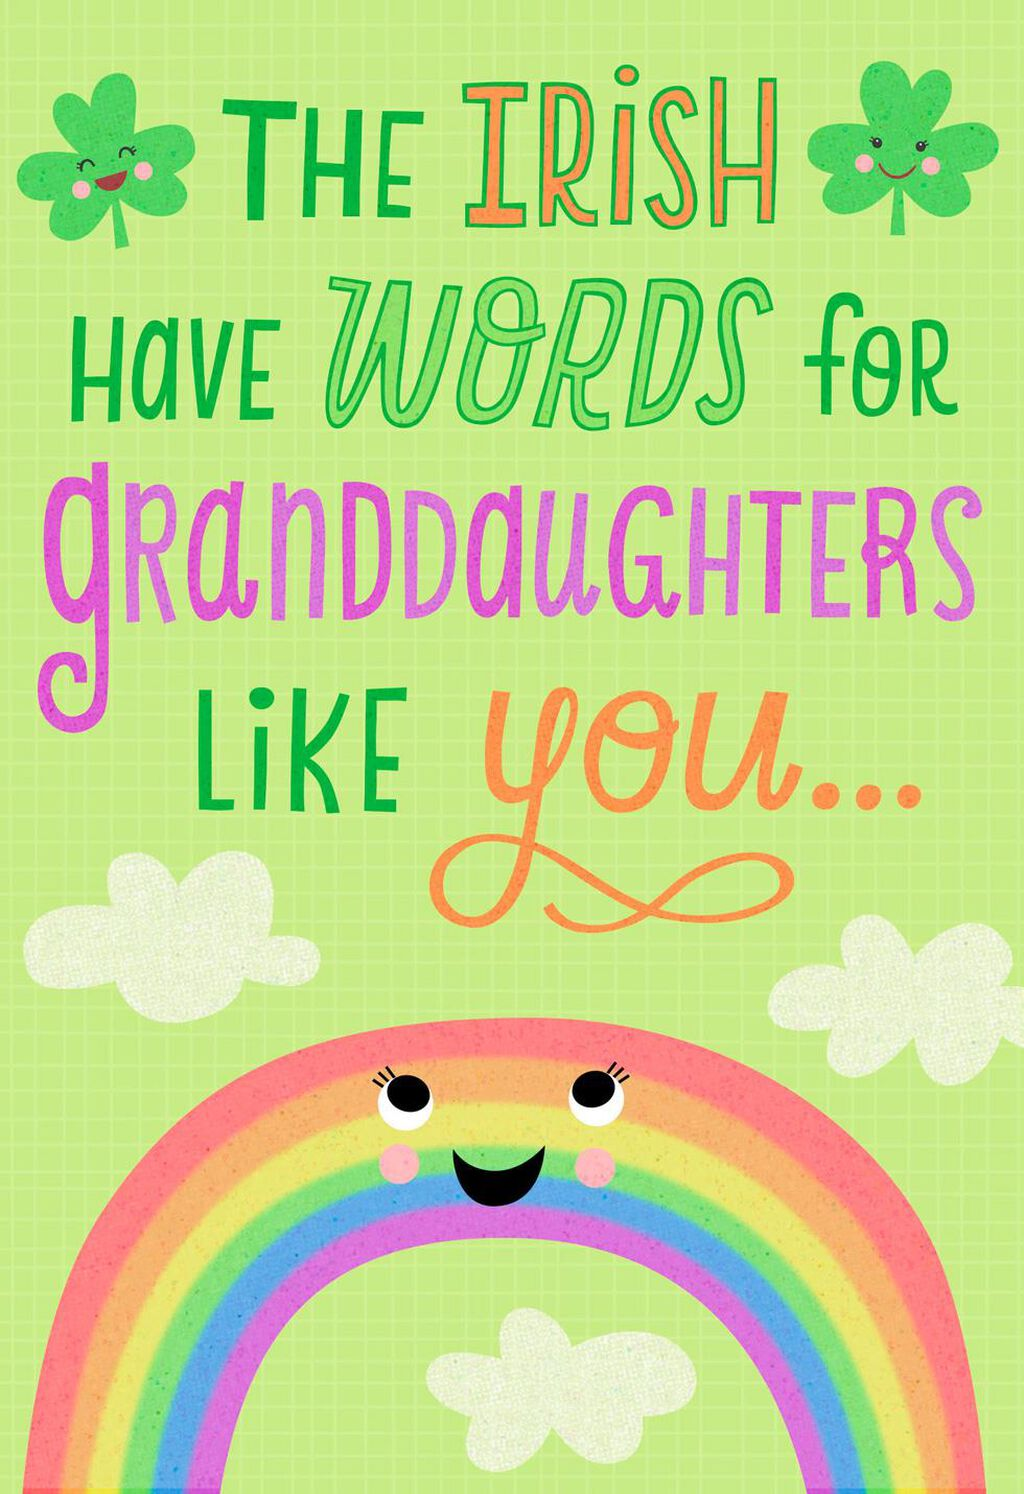 Irish Words For A Granddaughter St Patricks Day Card Greeting